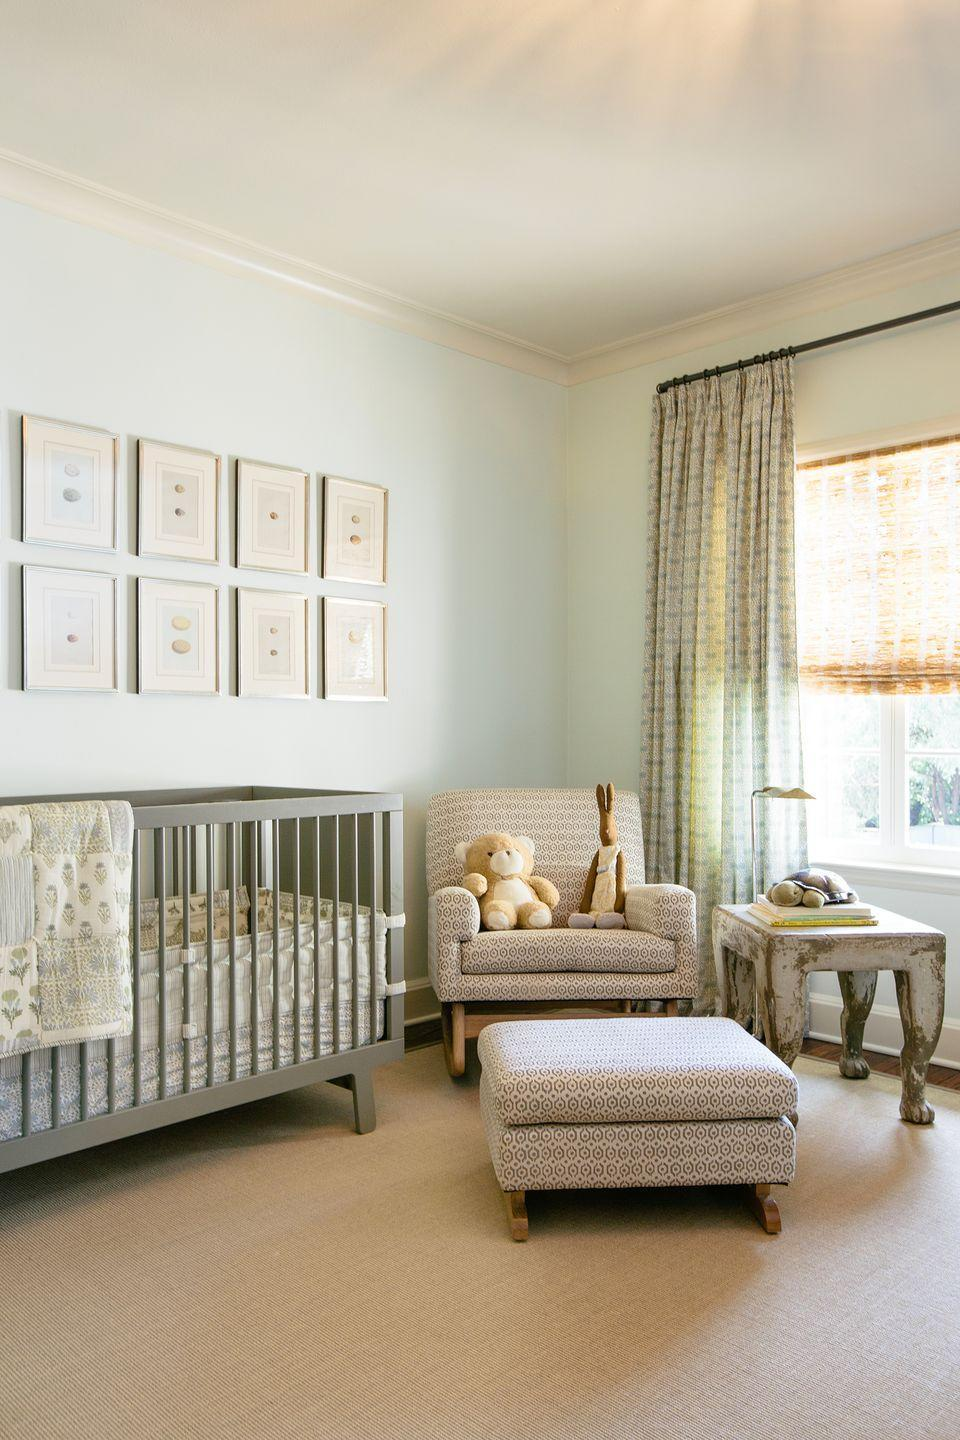 """<p>This nursery designed by <a href=""""https://www.jeanliudesign.com/"""" rel=""""nofollow noopener"""" target=""""_blank"""" data-ylk=""""slk:Jean Liu"""" class=""""link rapid-noclick-resp"""">Jean Liu</a> is a masterclass in unique and unexpected (yet still neutral) color schemes. Pastel mint green walls, curtains, and bedding keep things crisp and fresh and match nicely with the gray accents, while the pale olive green crib speaks to the warmer camel and creams tones throughout. </p>"""